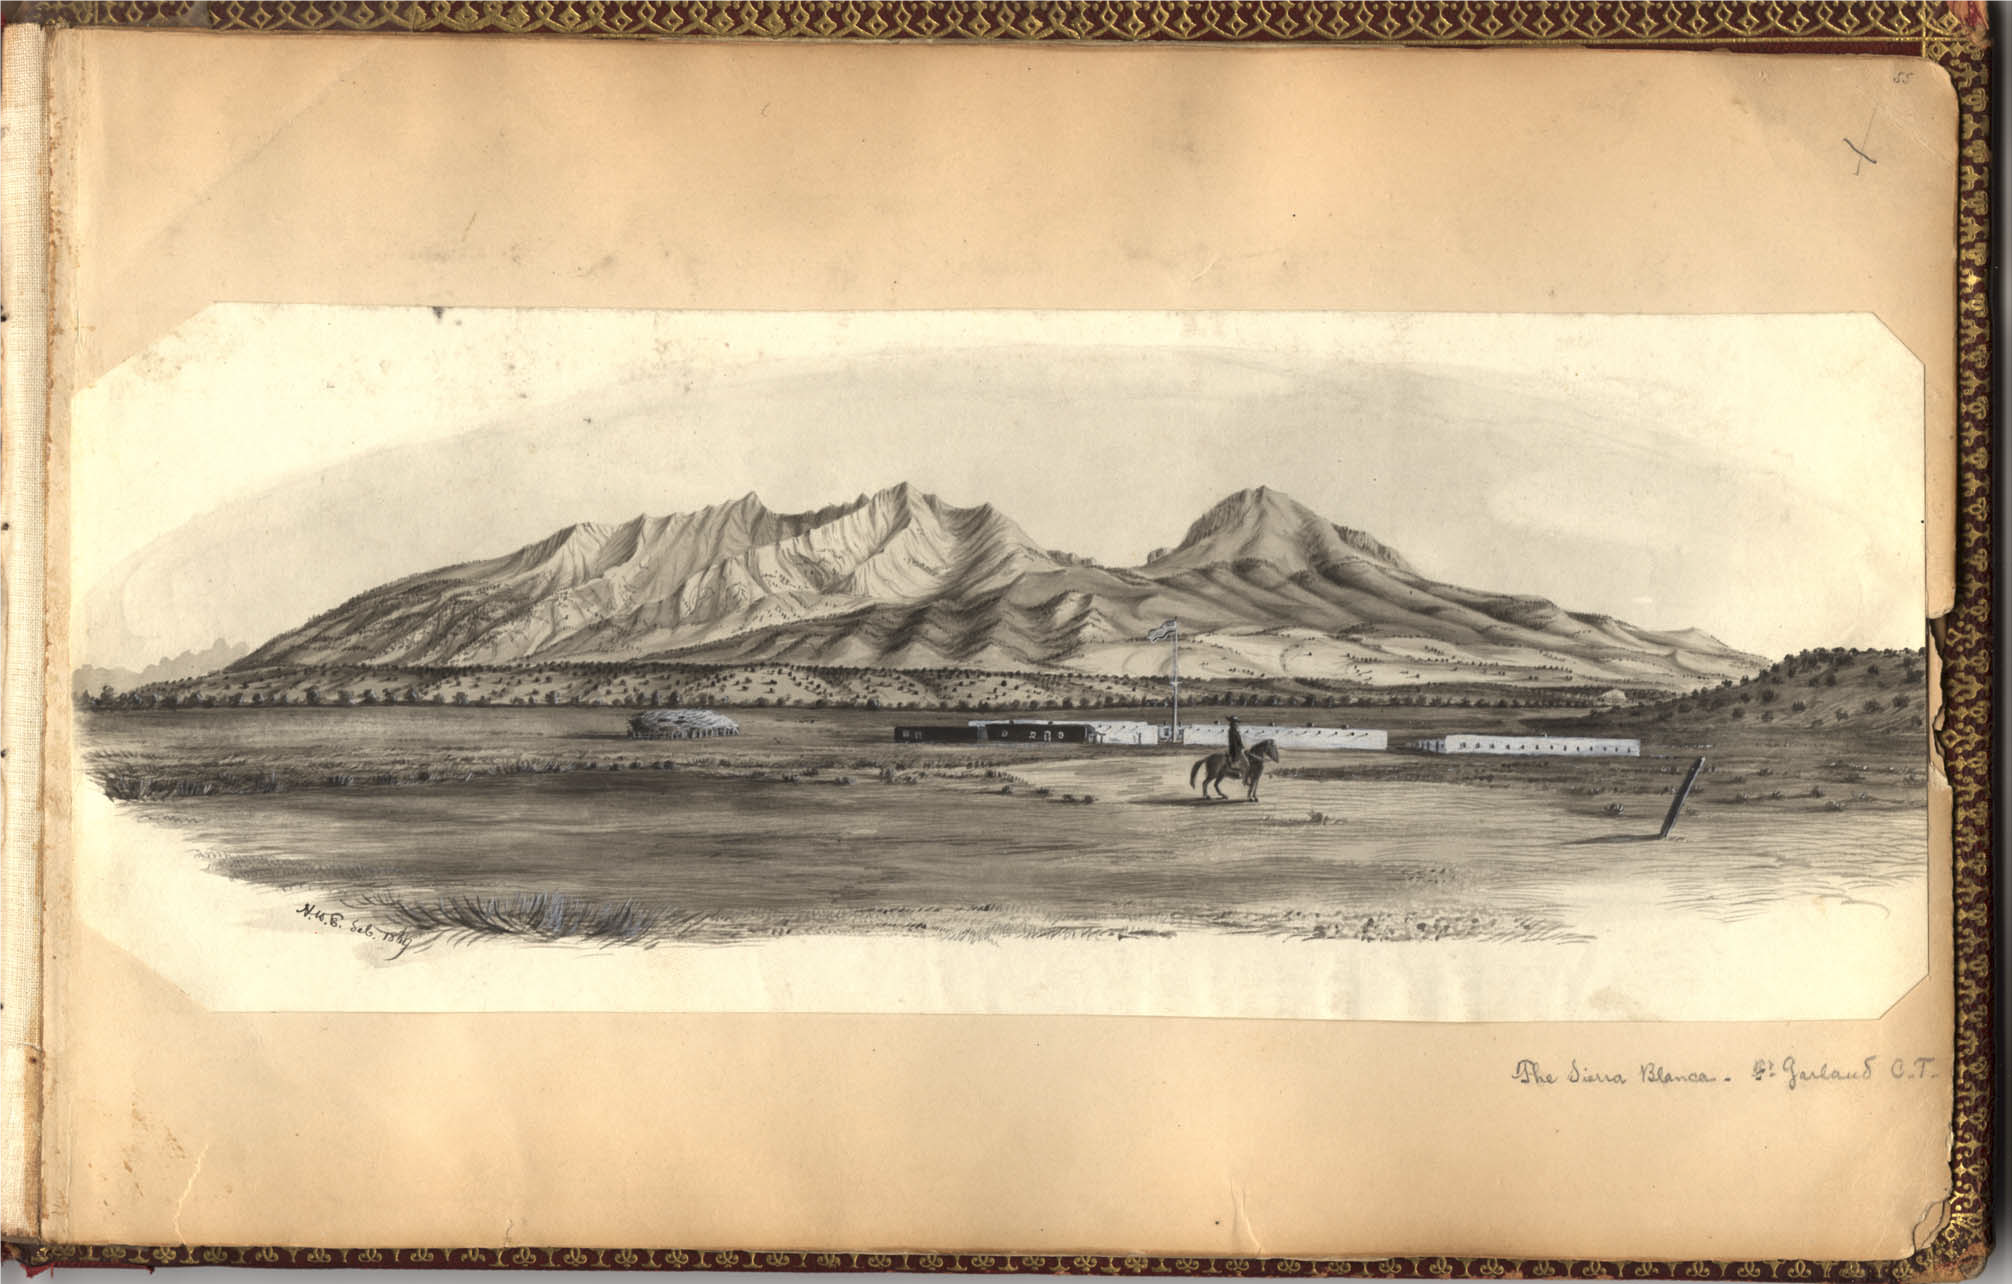 Sketch, with Sierra Blanca Massif in the background, and Fort Garland, an American flag on a flag pole, and a person on a horse in the foreground.